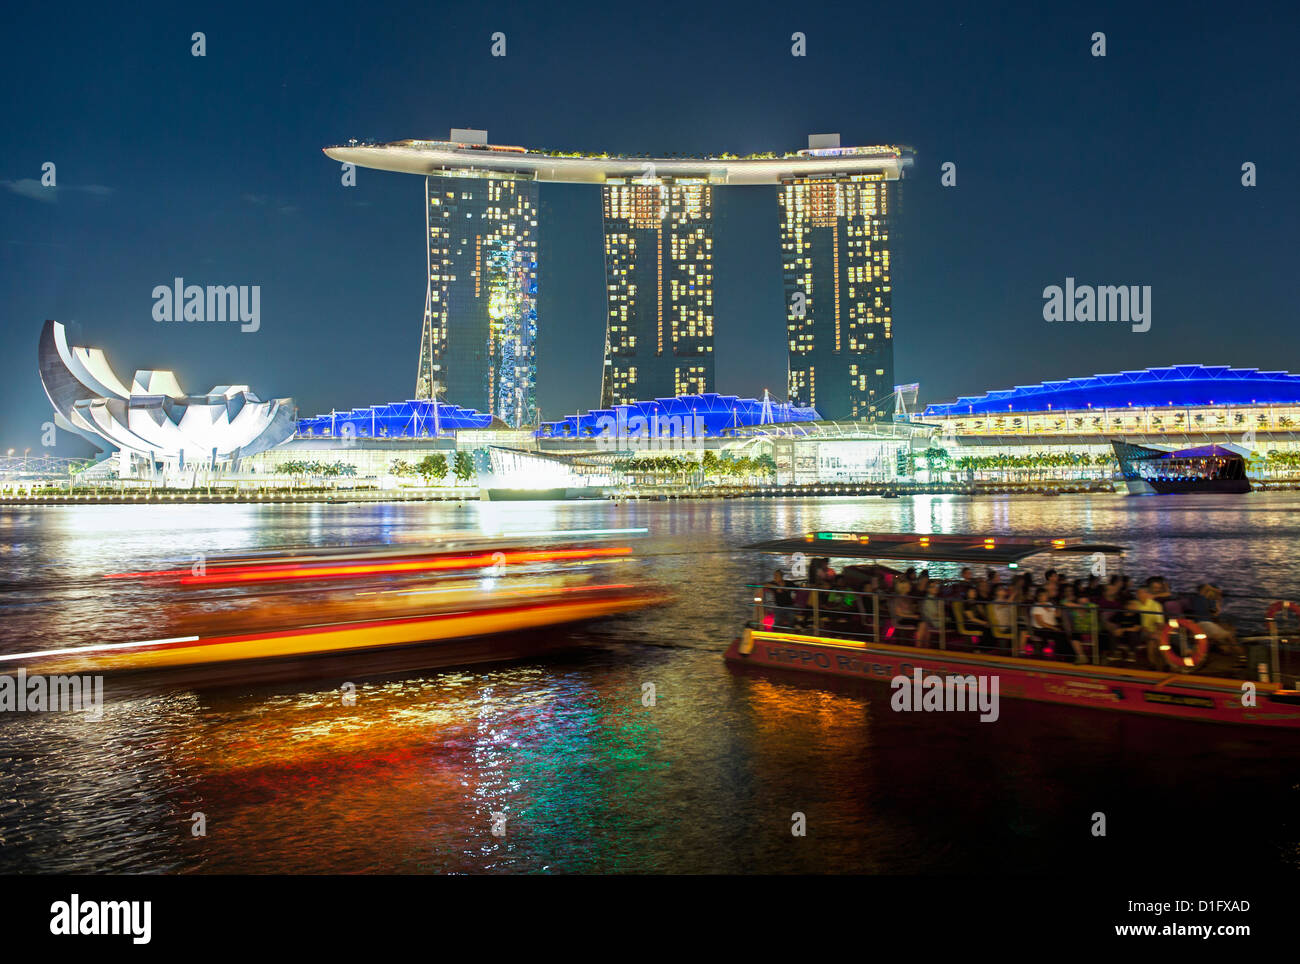 Marina Bay Sands, Marina Bay, Singapore, Southeast Asia, Asia - Stock Image